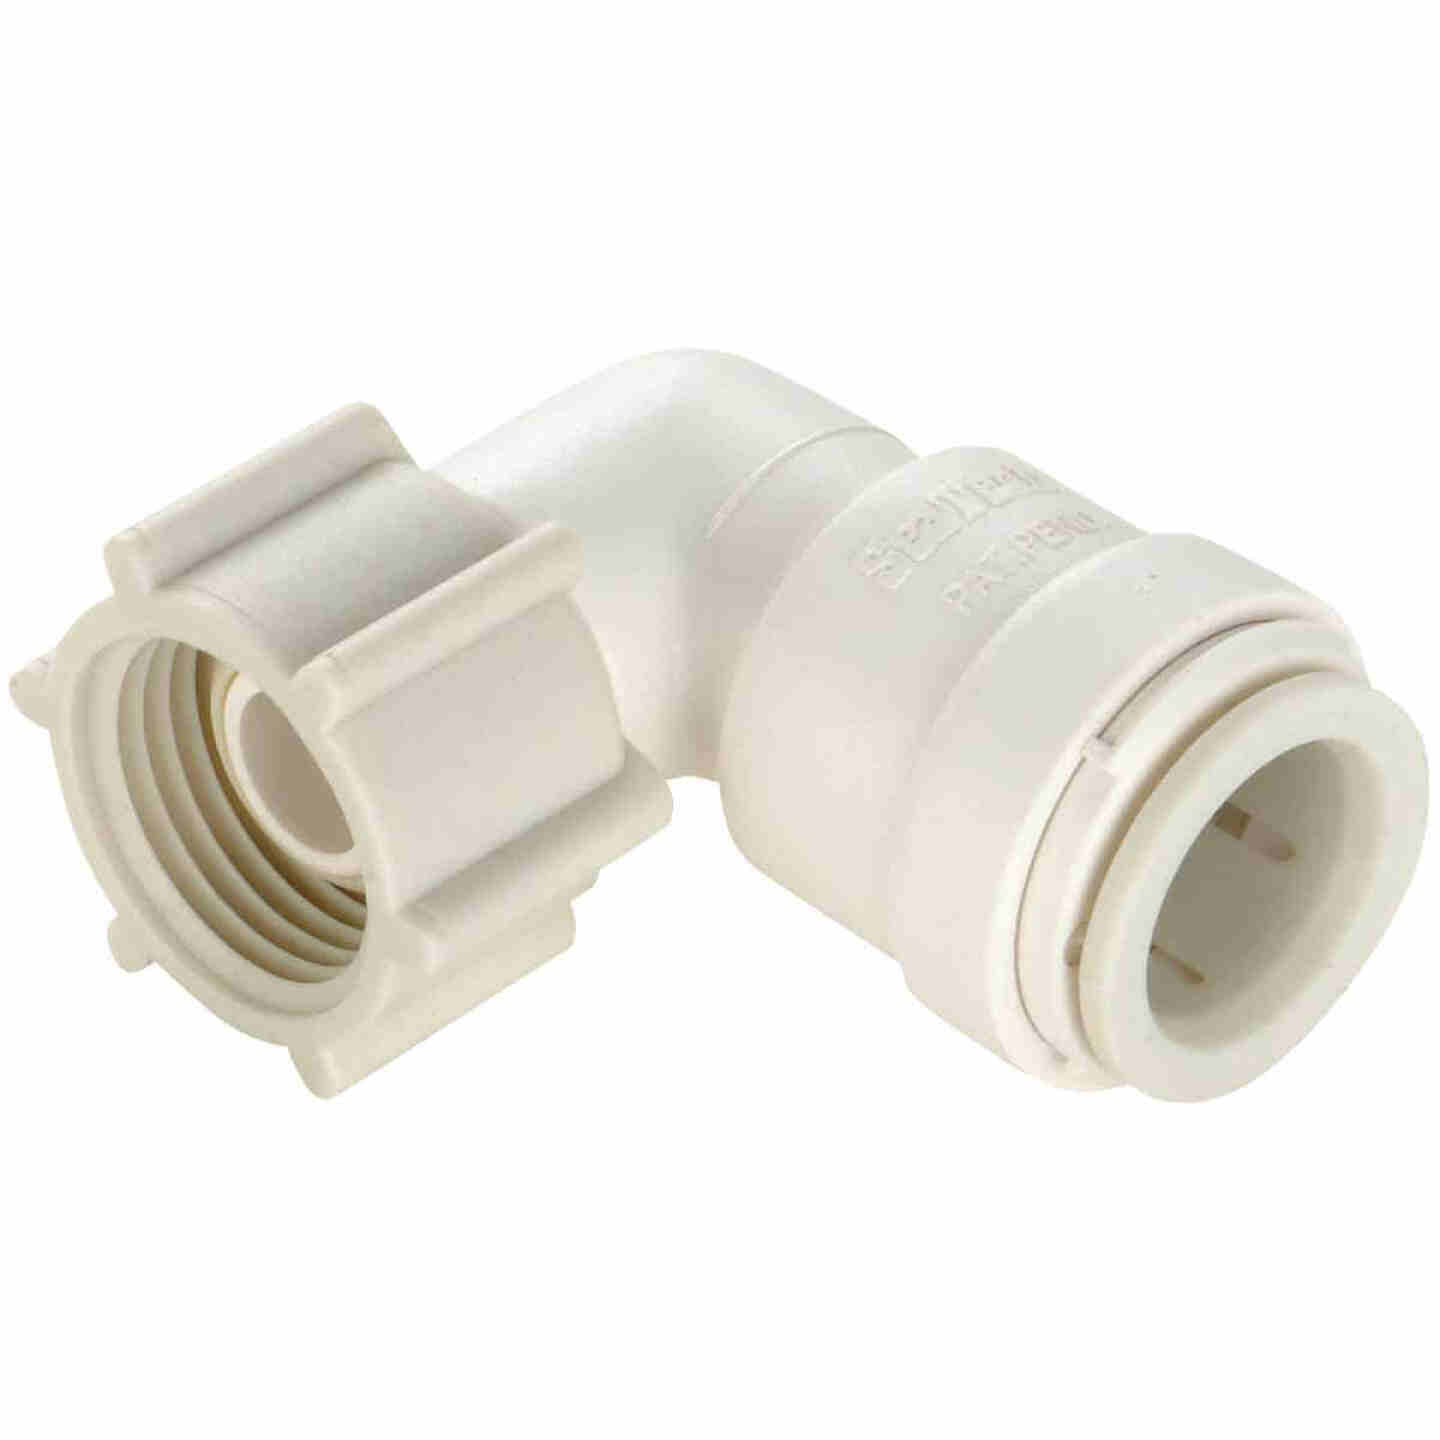 Watts 1/2 In. CTS x 1/2 In. FPT 90 Deg. Quick Connect Plastic Elbow (1/4 Bend) Image 1